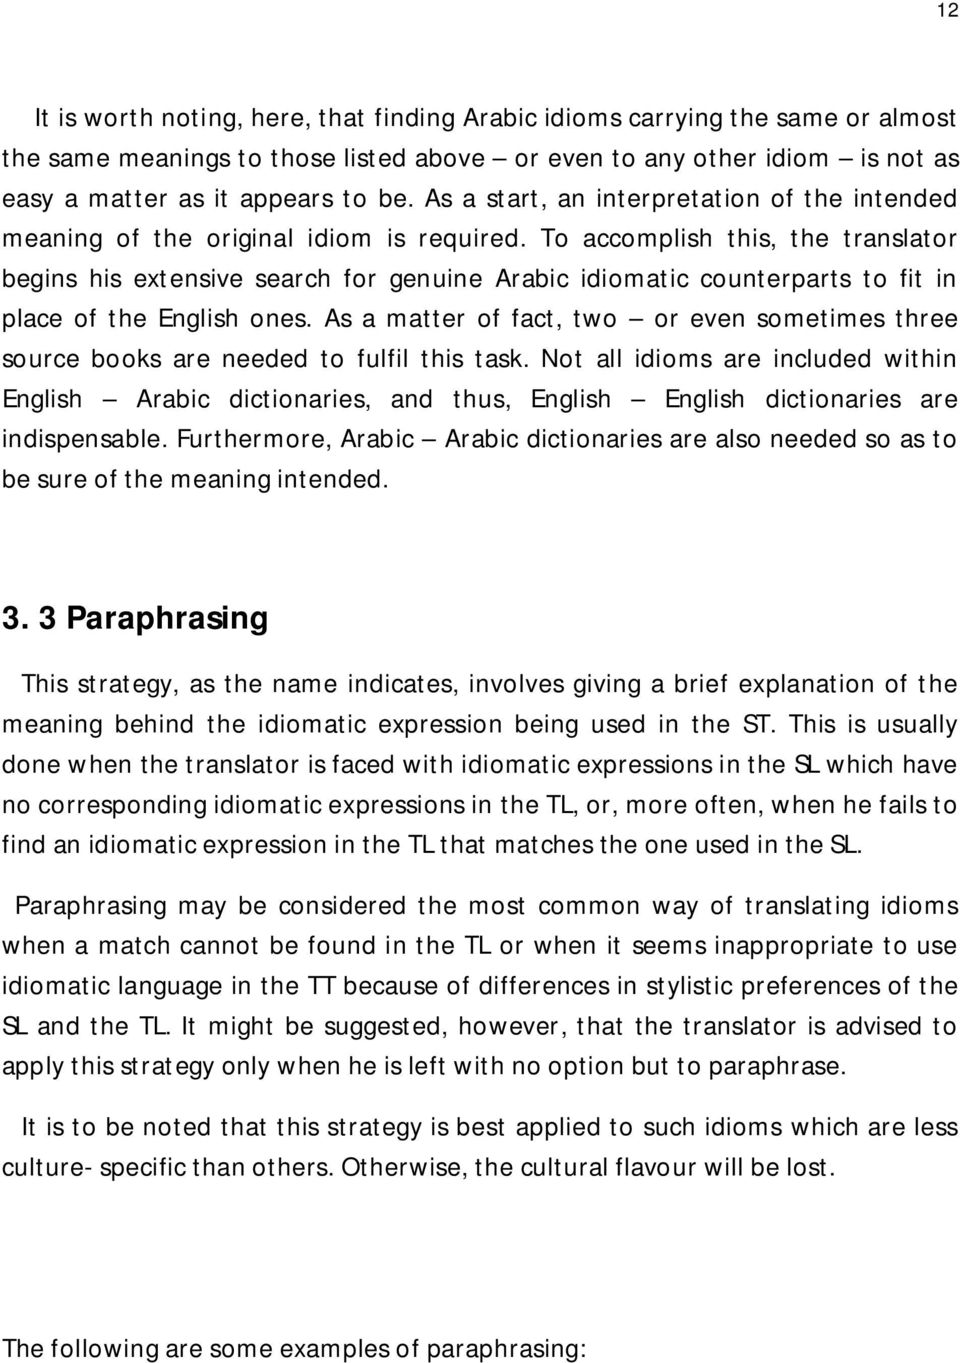 OVERCOMING DIFFICULTIES IN TRANSLATING IDIOMS FROM ENGLISH